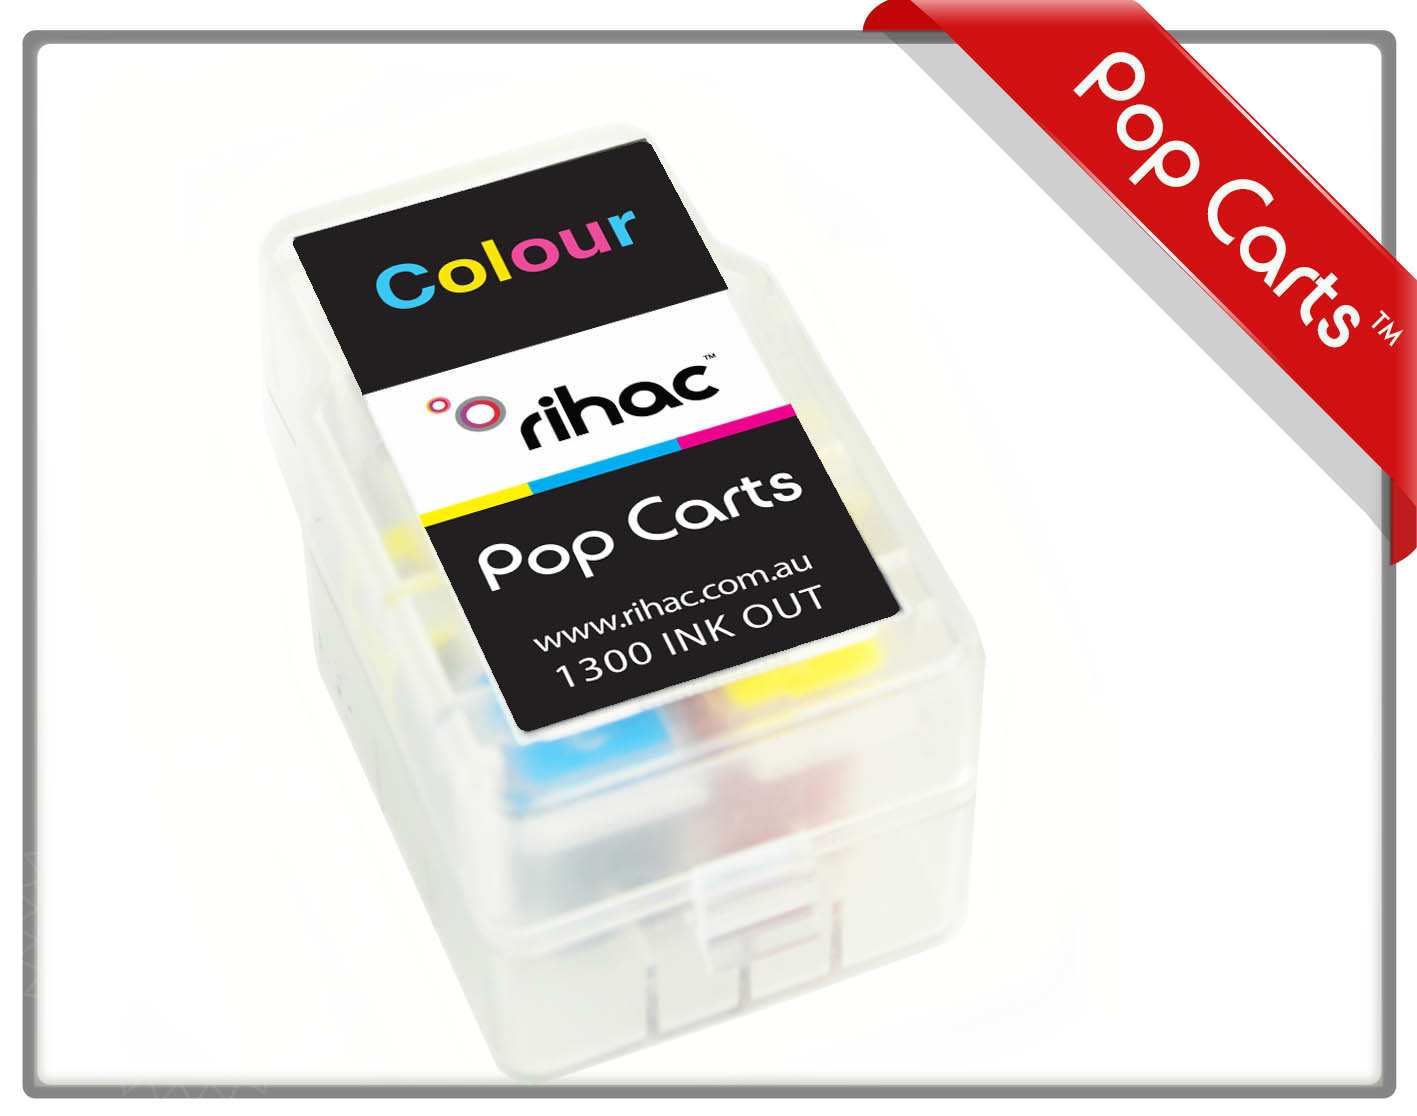 MX456 Colour Pop Cart